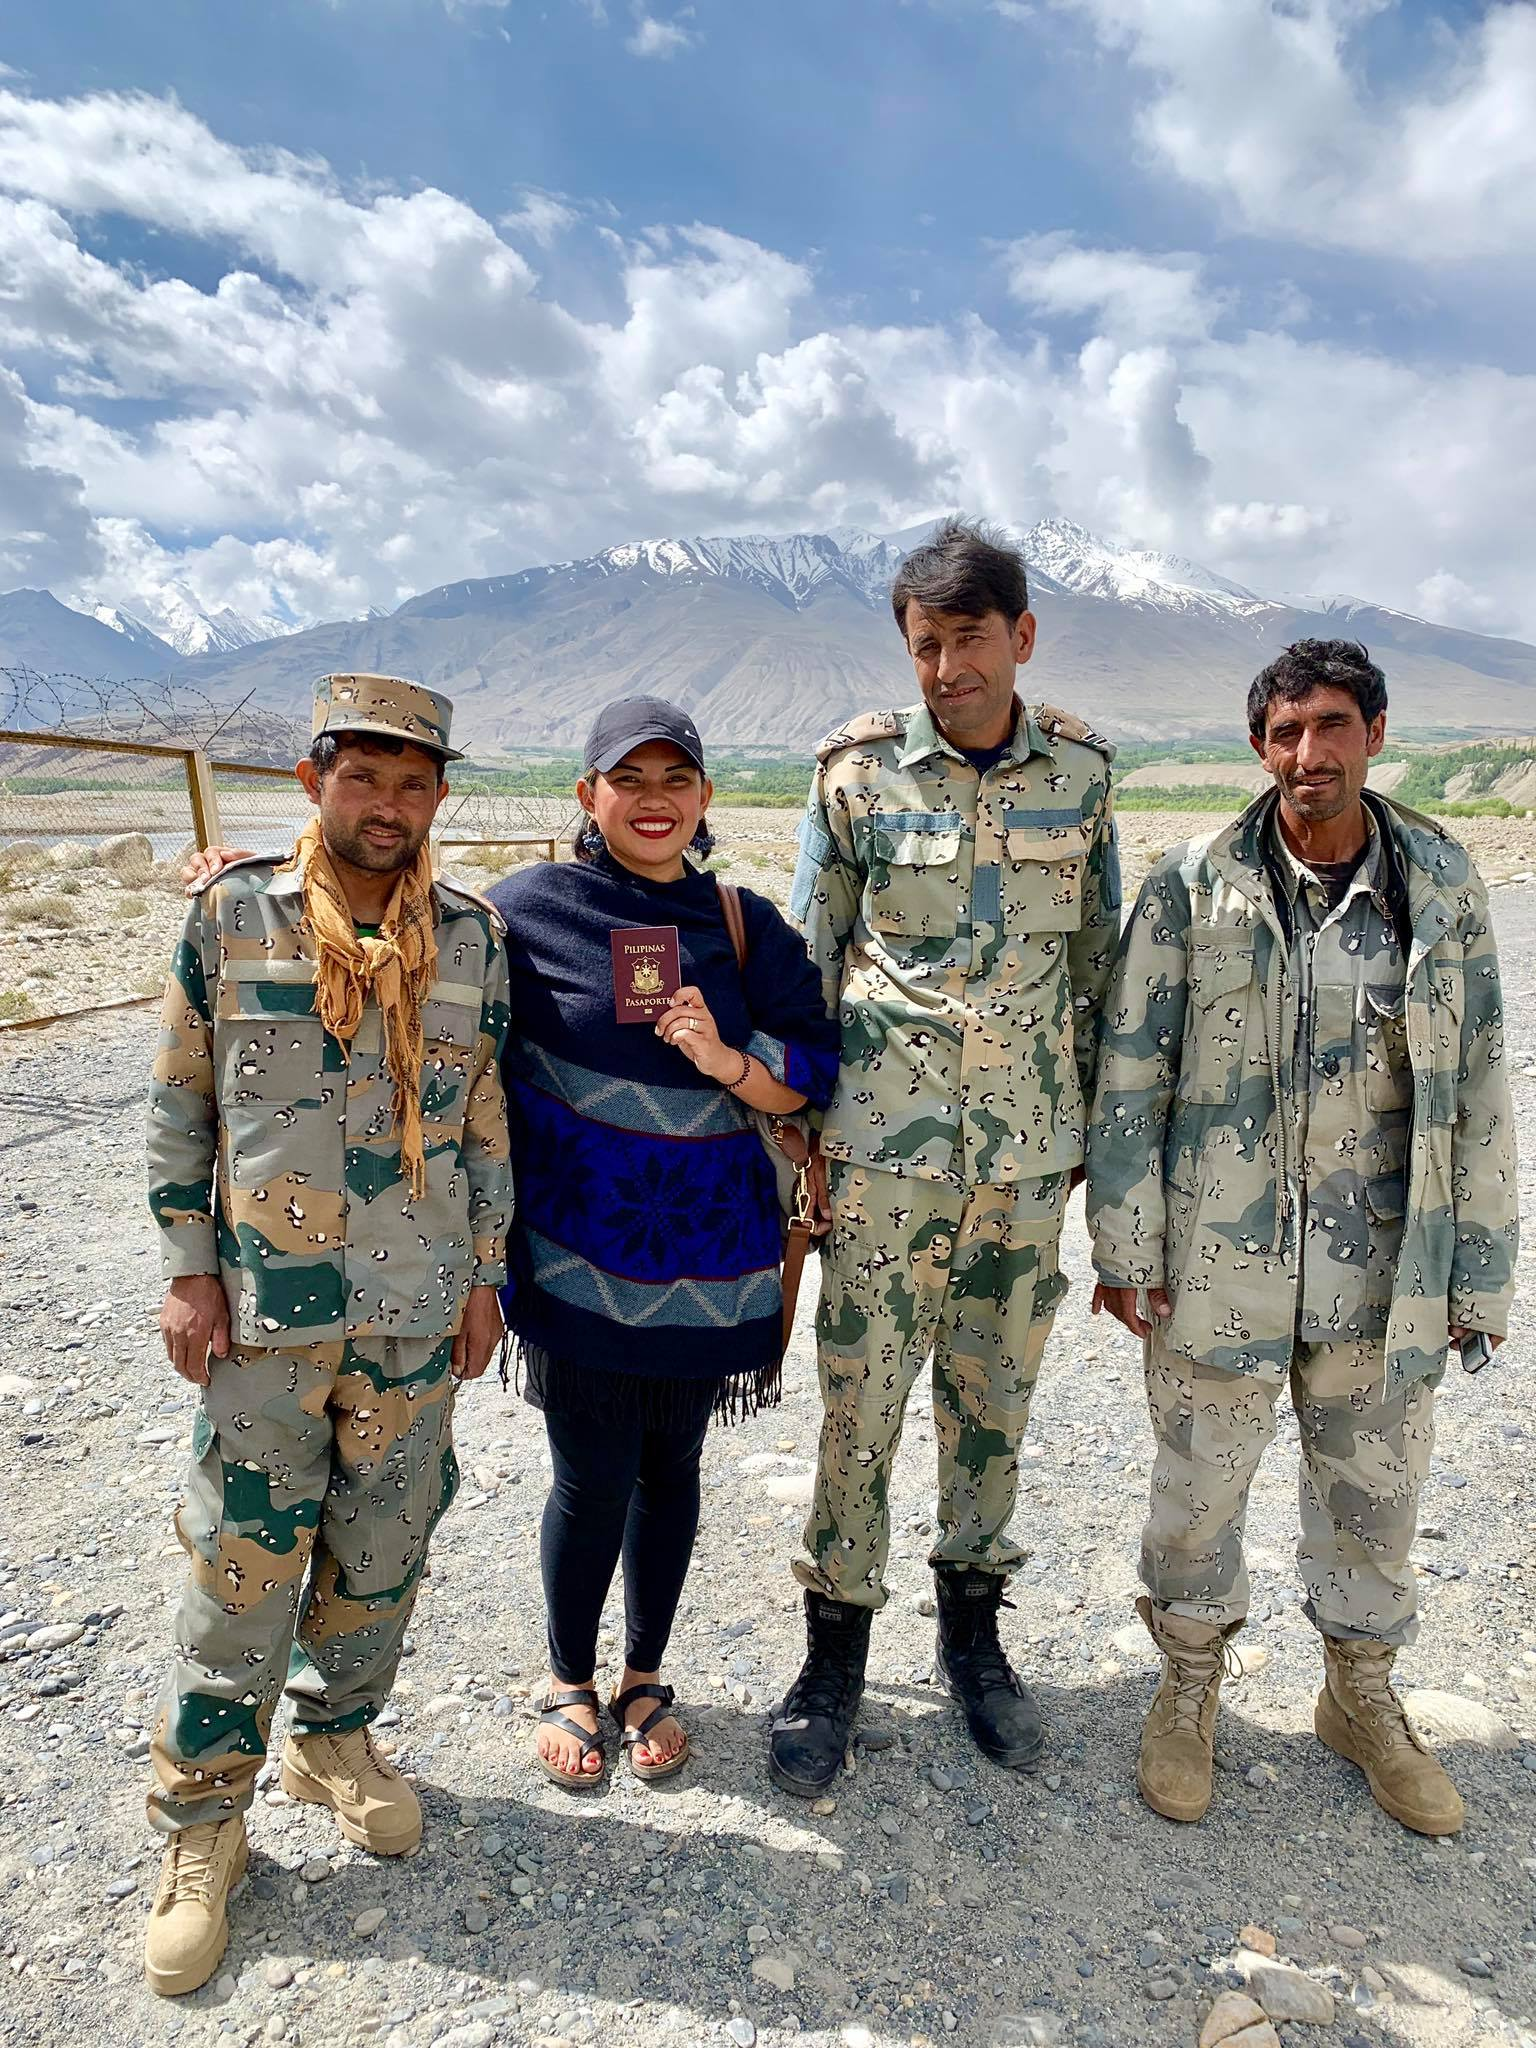 Kach Solo Travels in 2019 AFGHANISTAN, my 127th country32.jpg